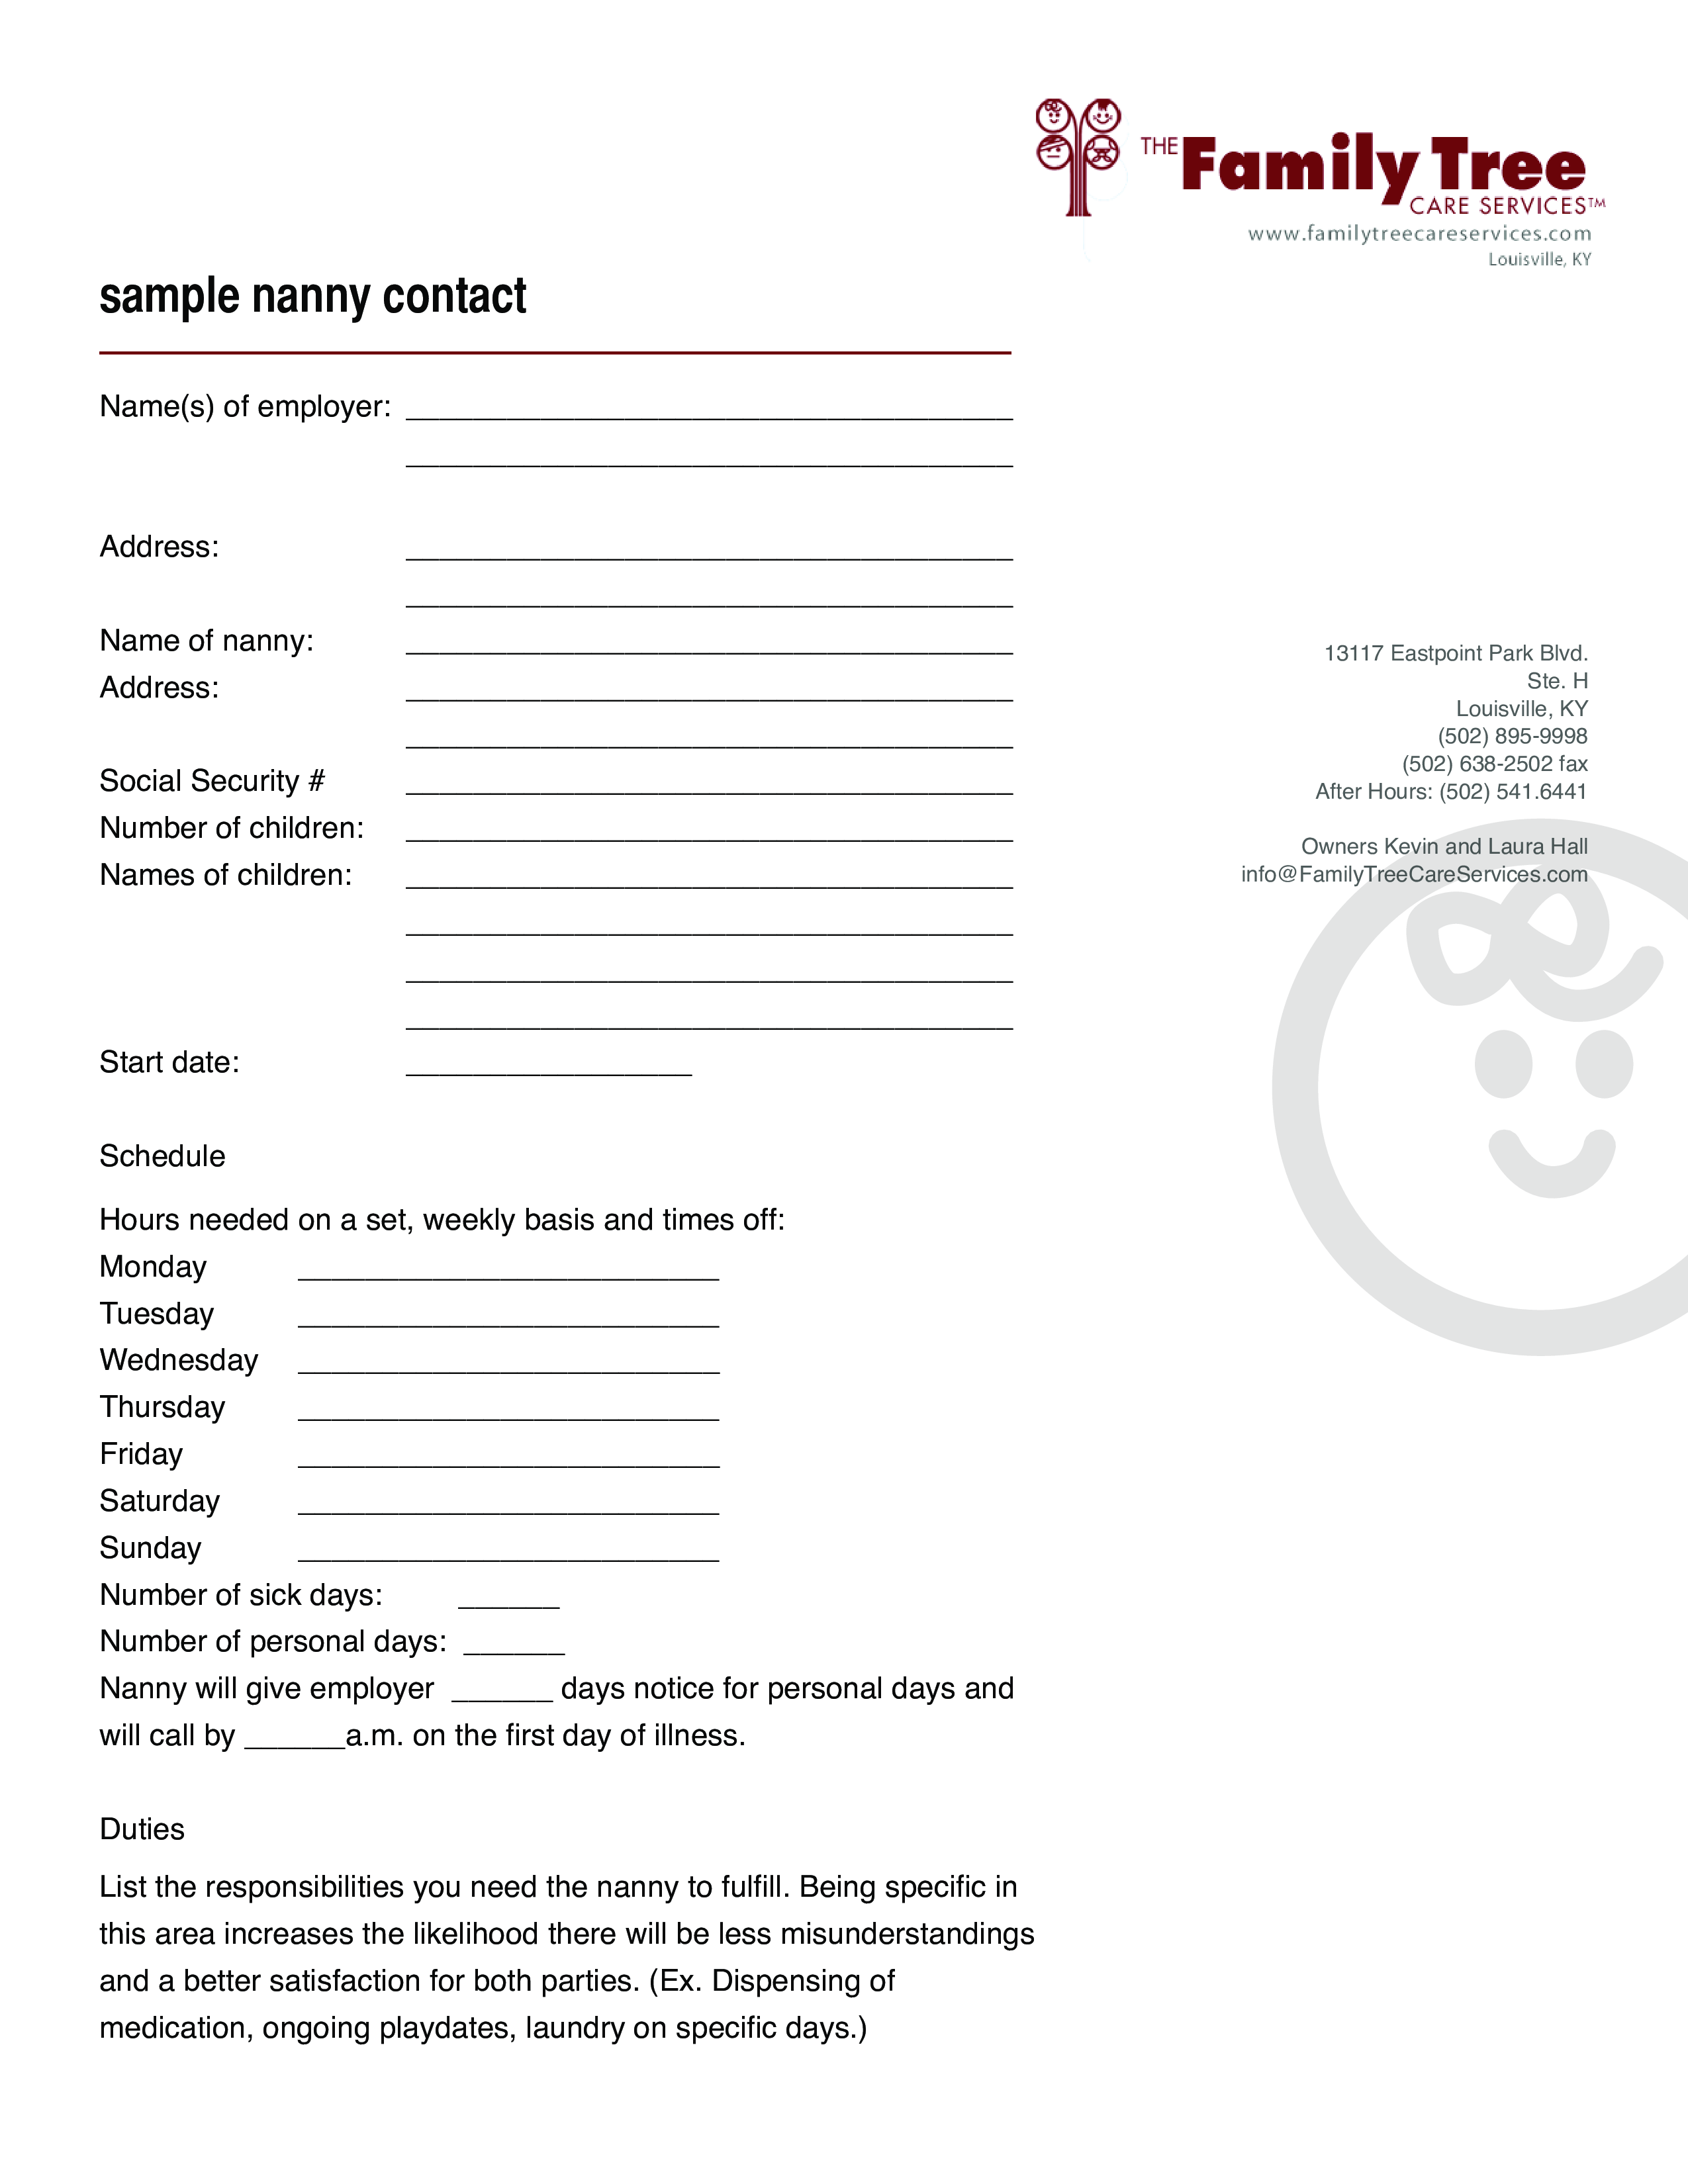 Free Family Tree Nanny Contract Templates At Allbusinesstemplates